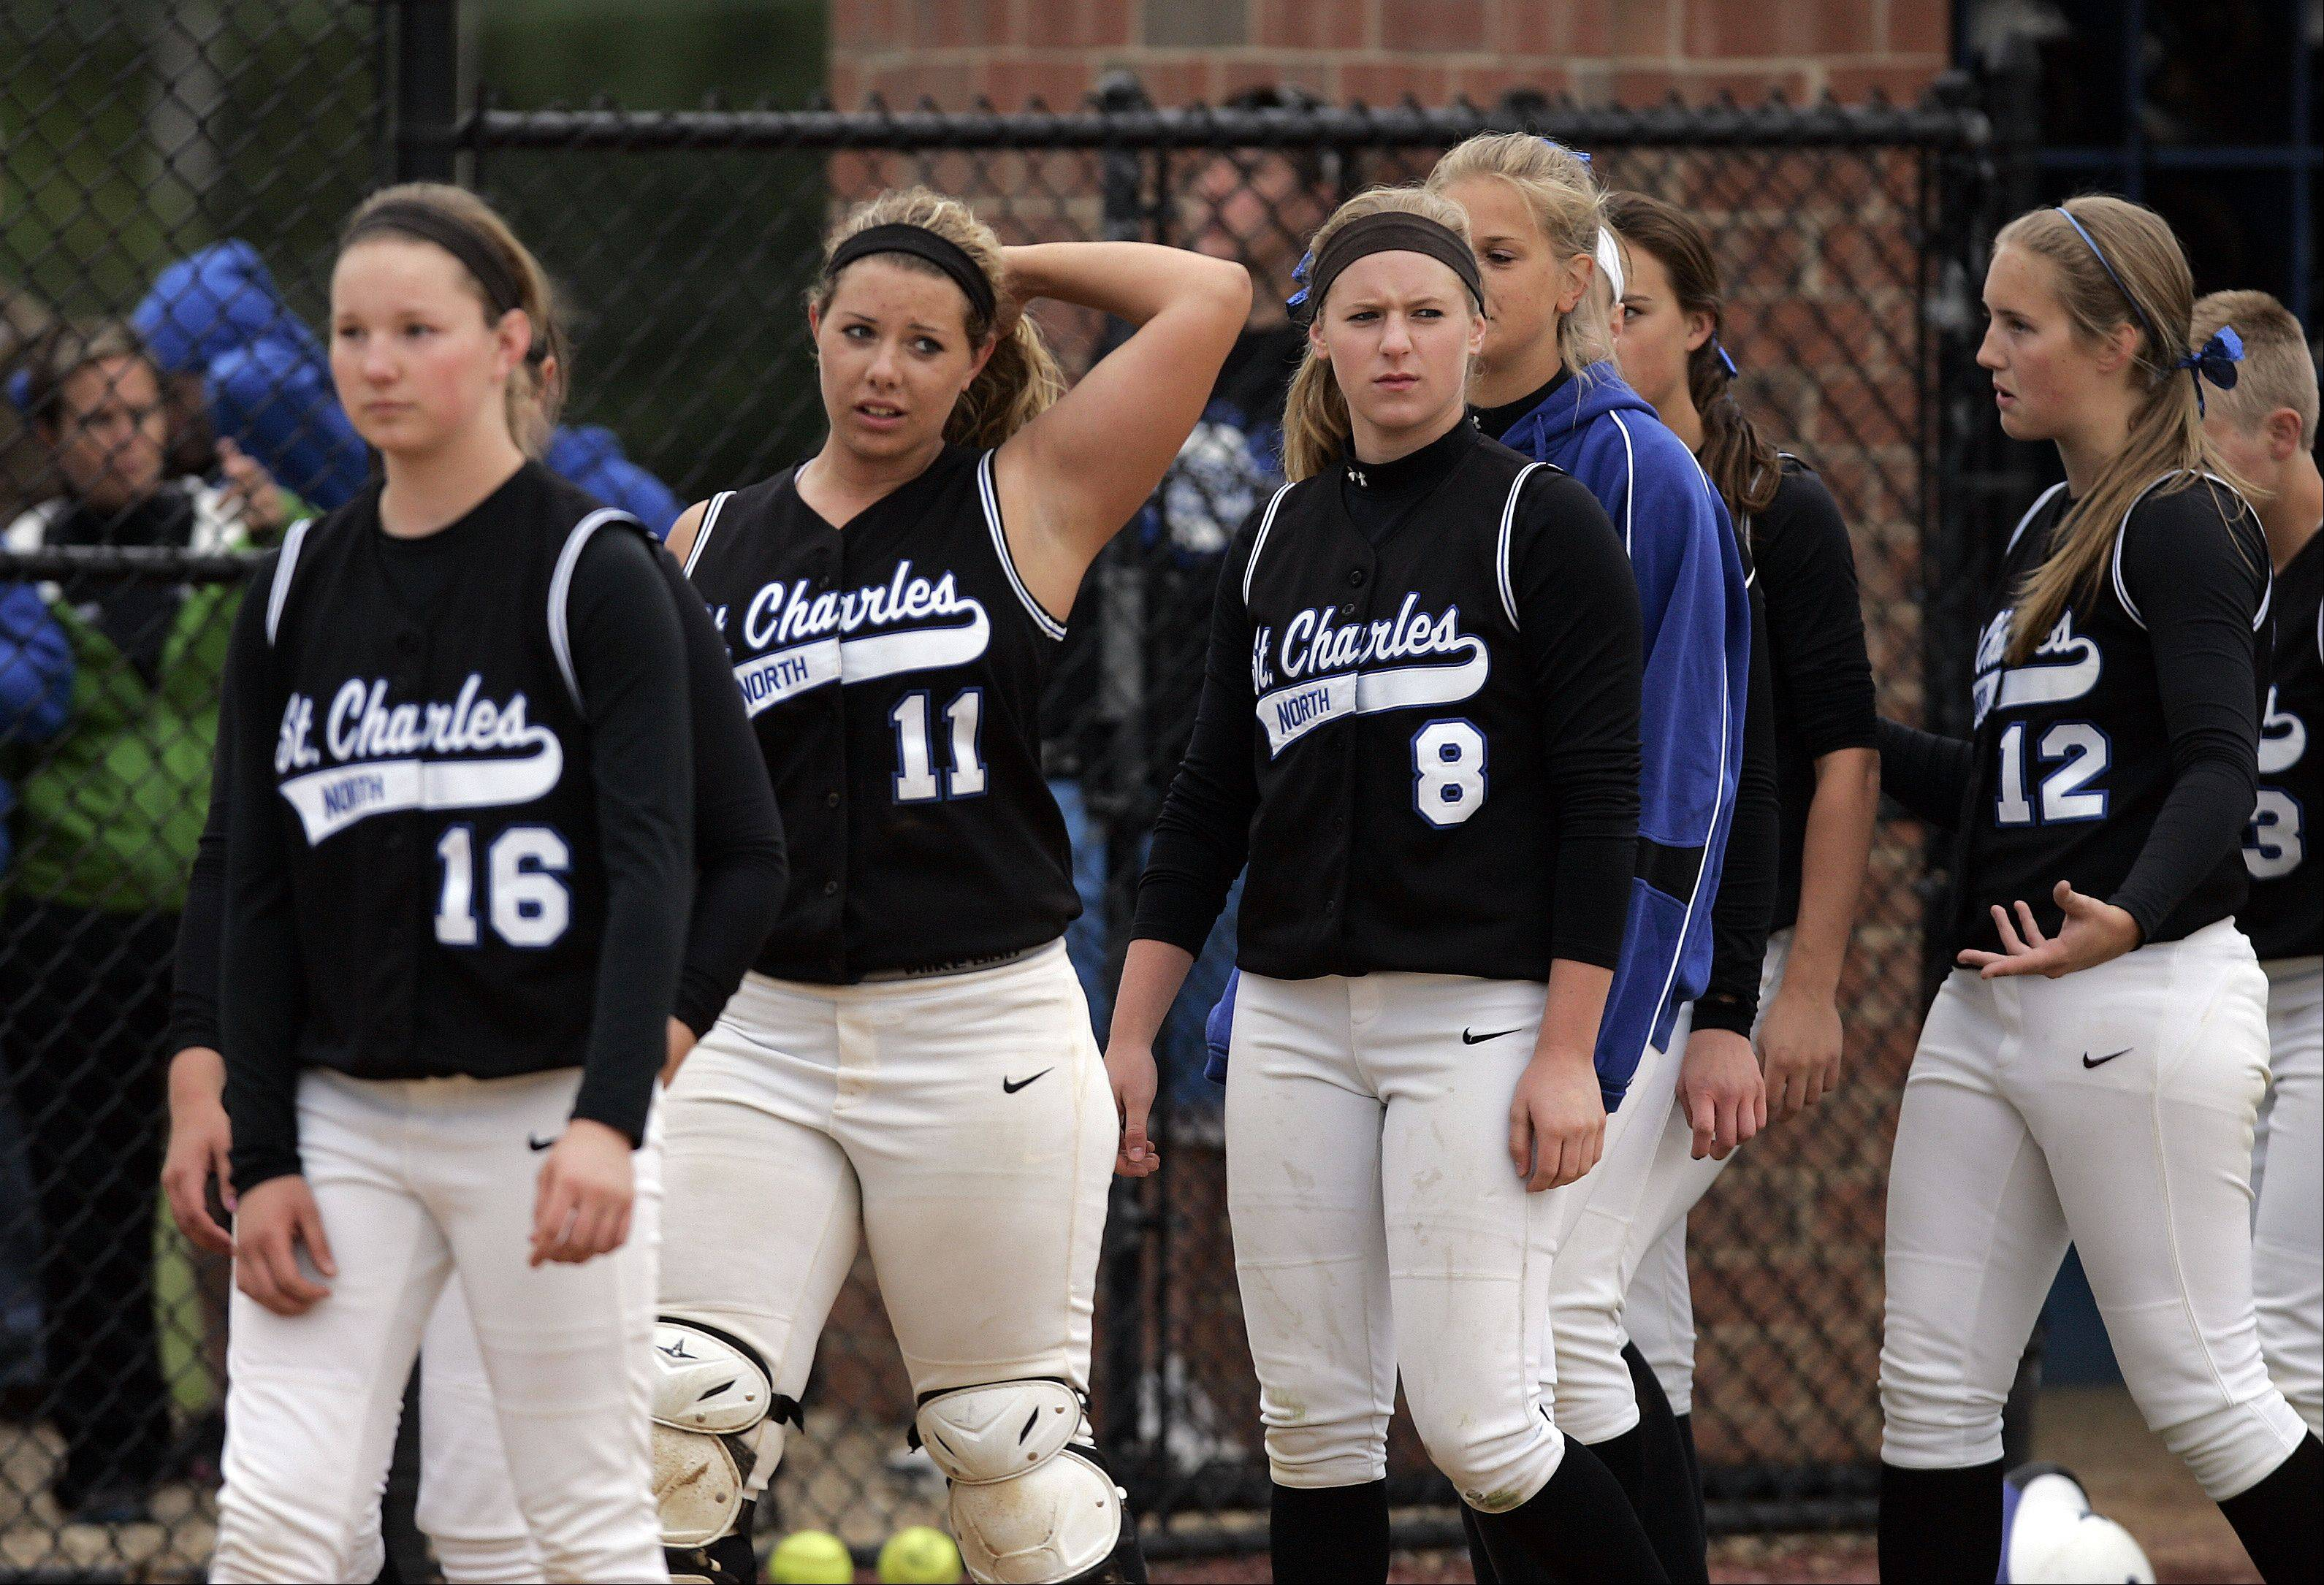 St. Charles North reacts after losing to South Elgin Saturdy in the Class 4A regional softball finals.